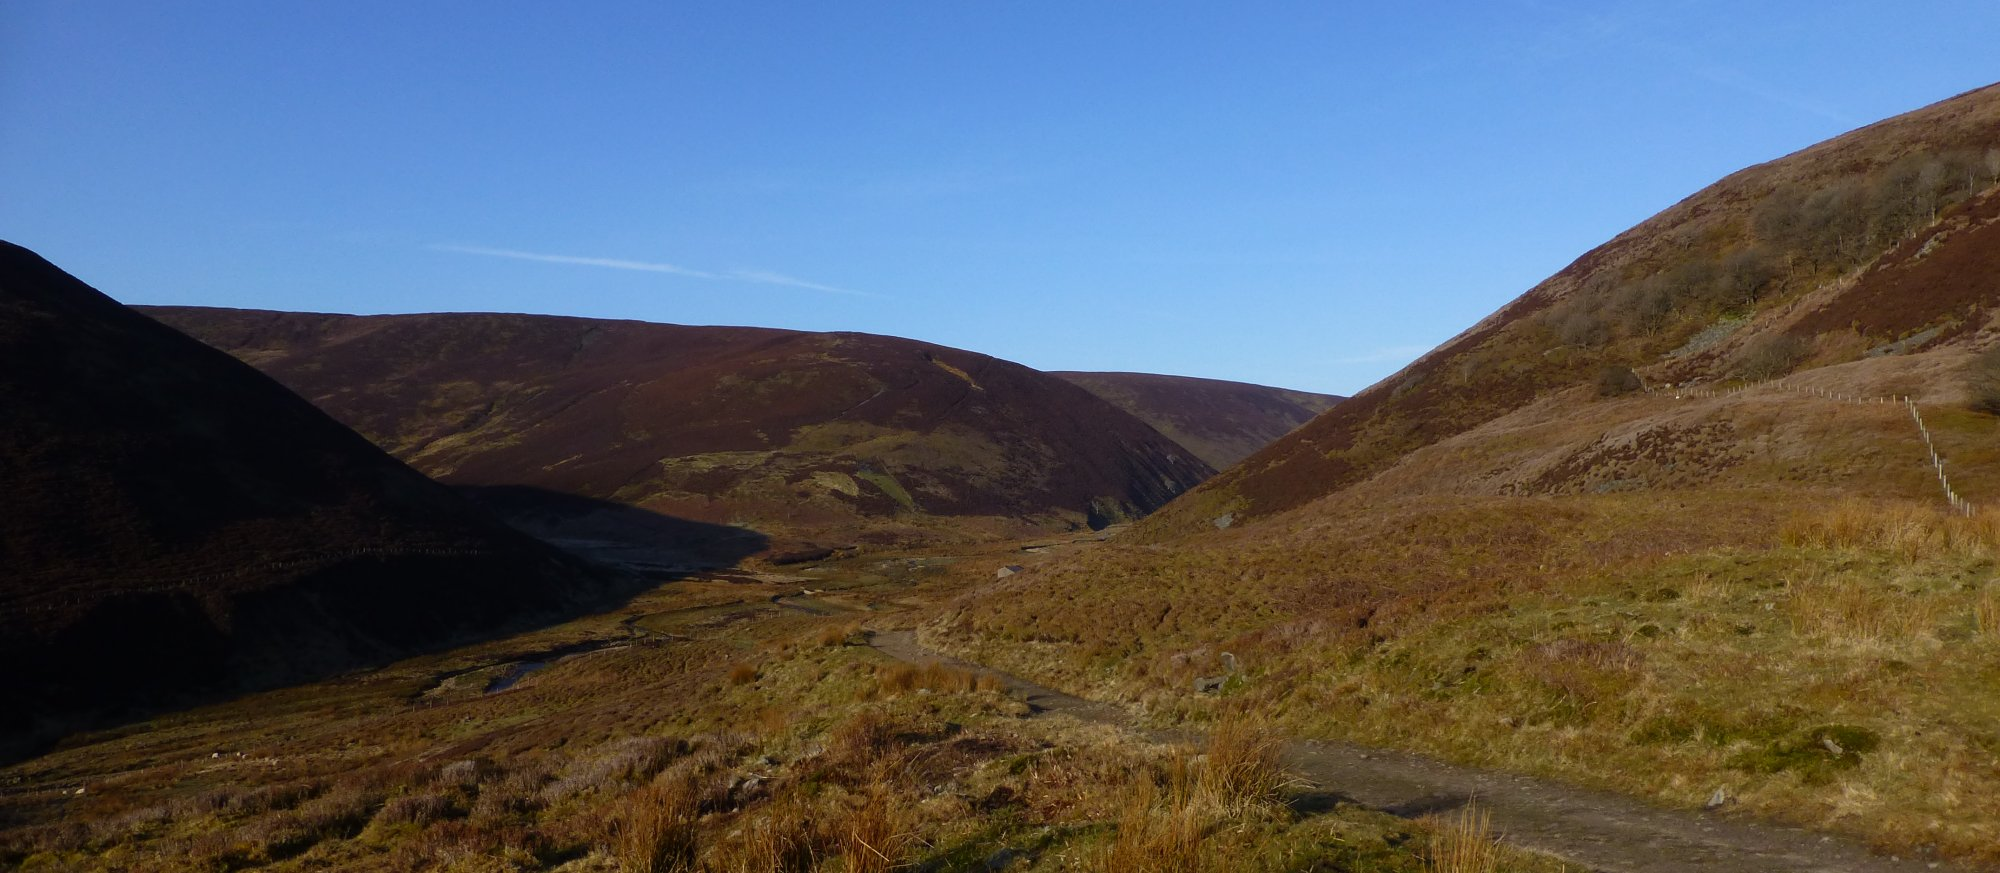 Walking up into Fiendsdale in the Bowland Fells